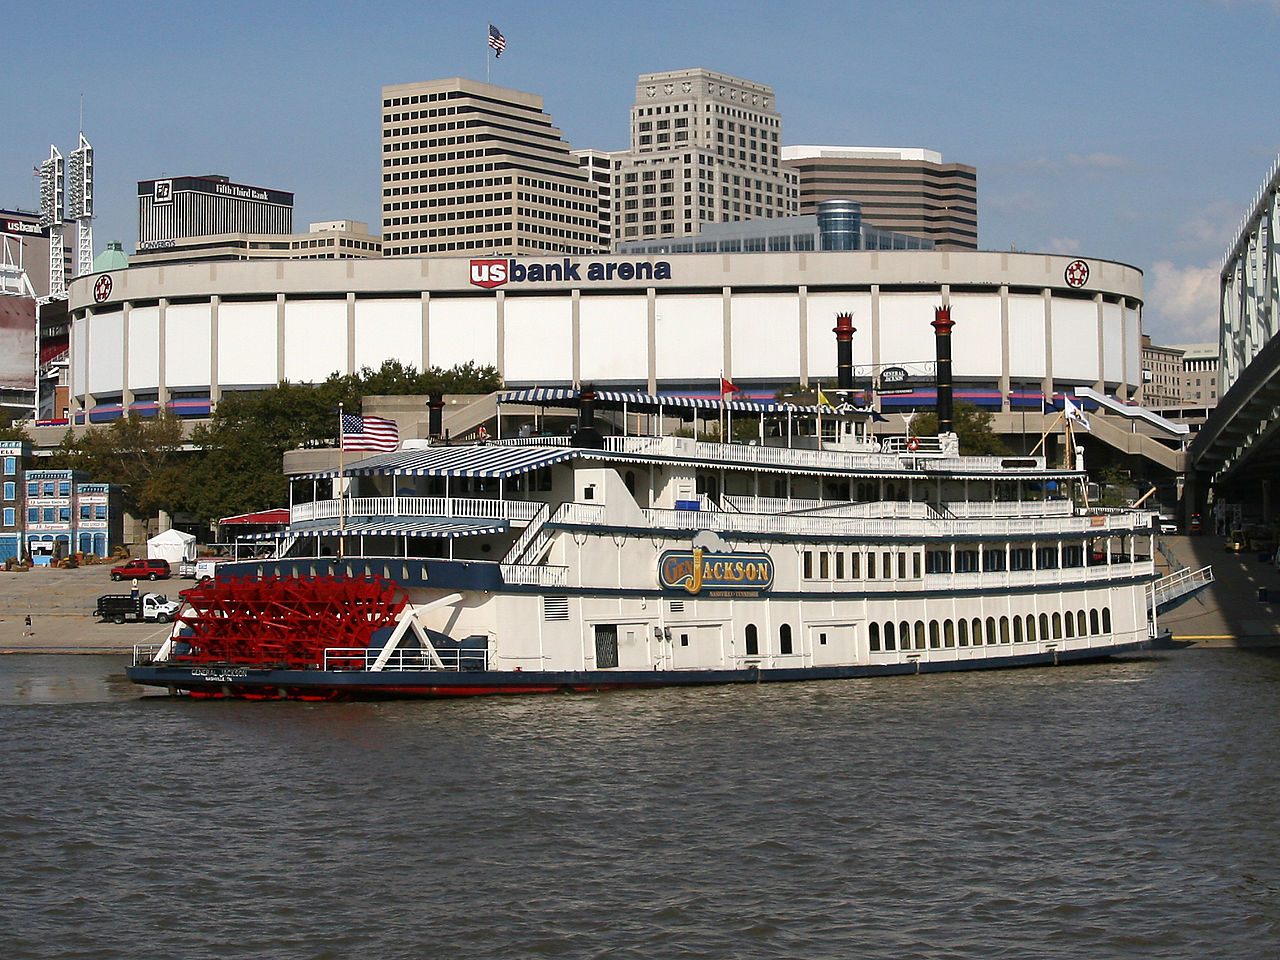 Amazing Place to Visit In Nashville-The General Jackson Showboat